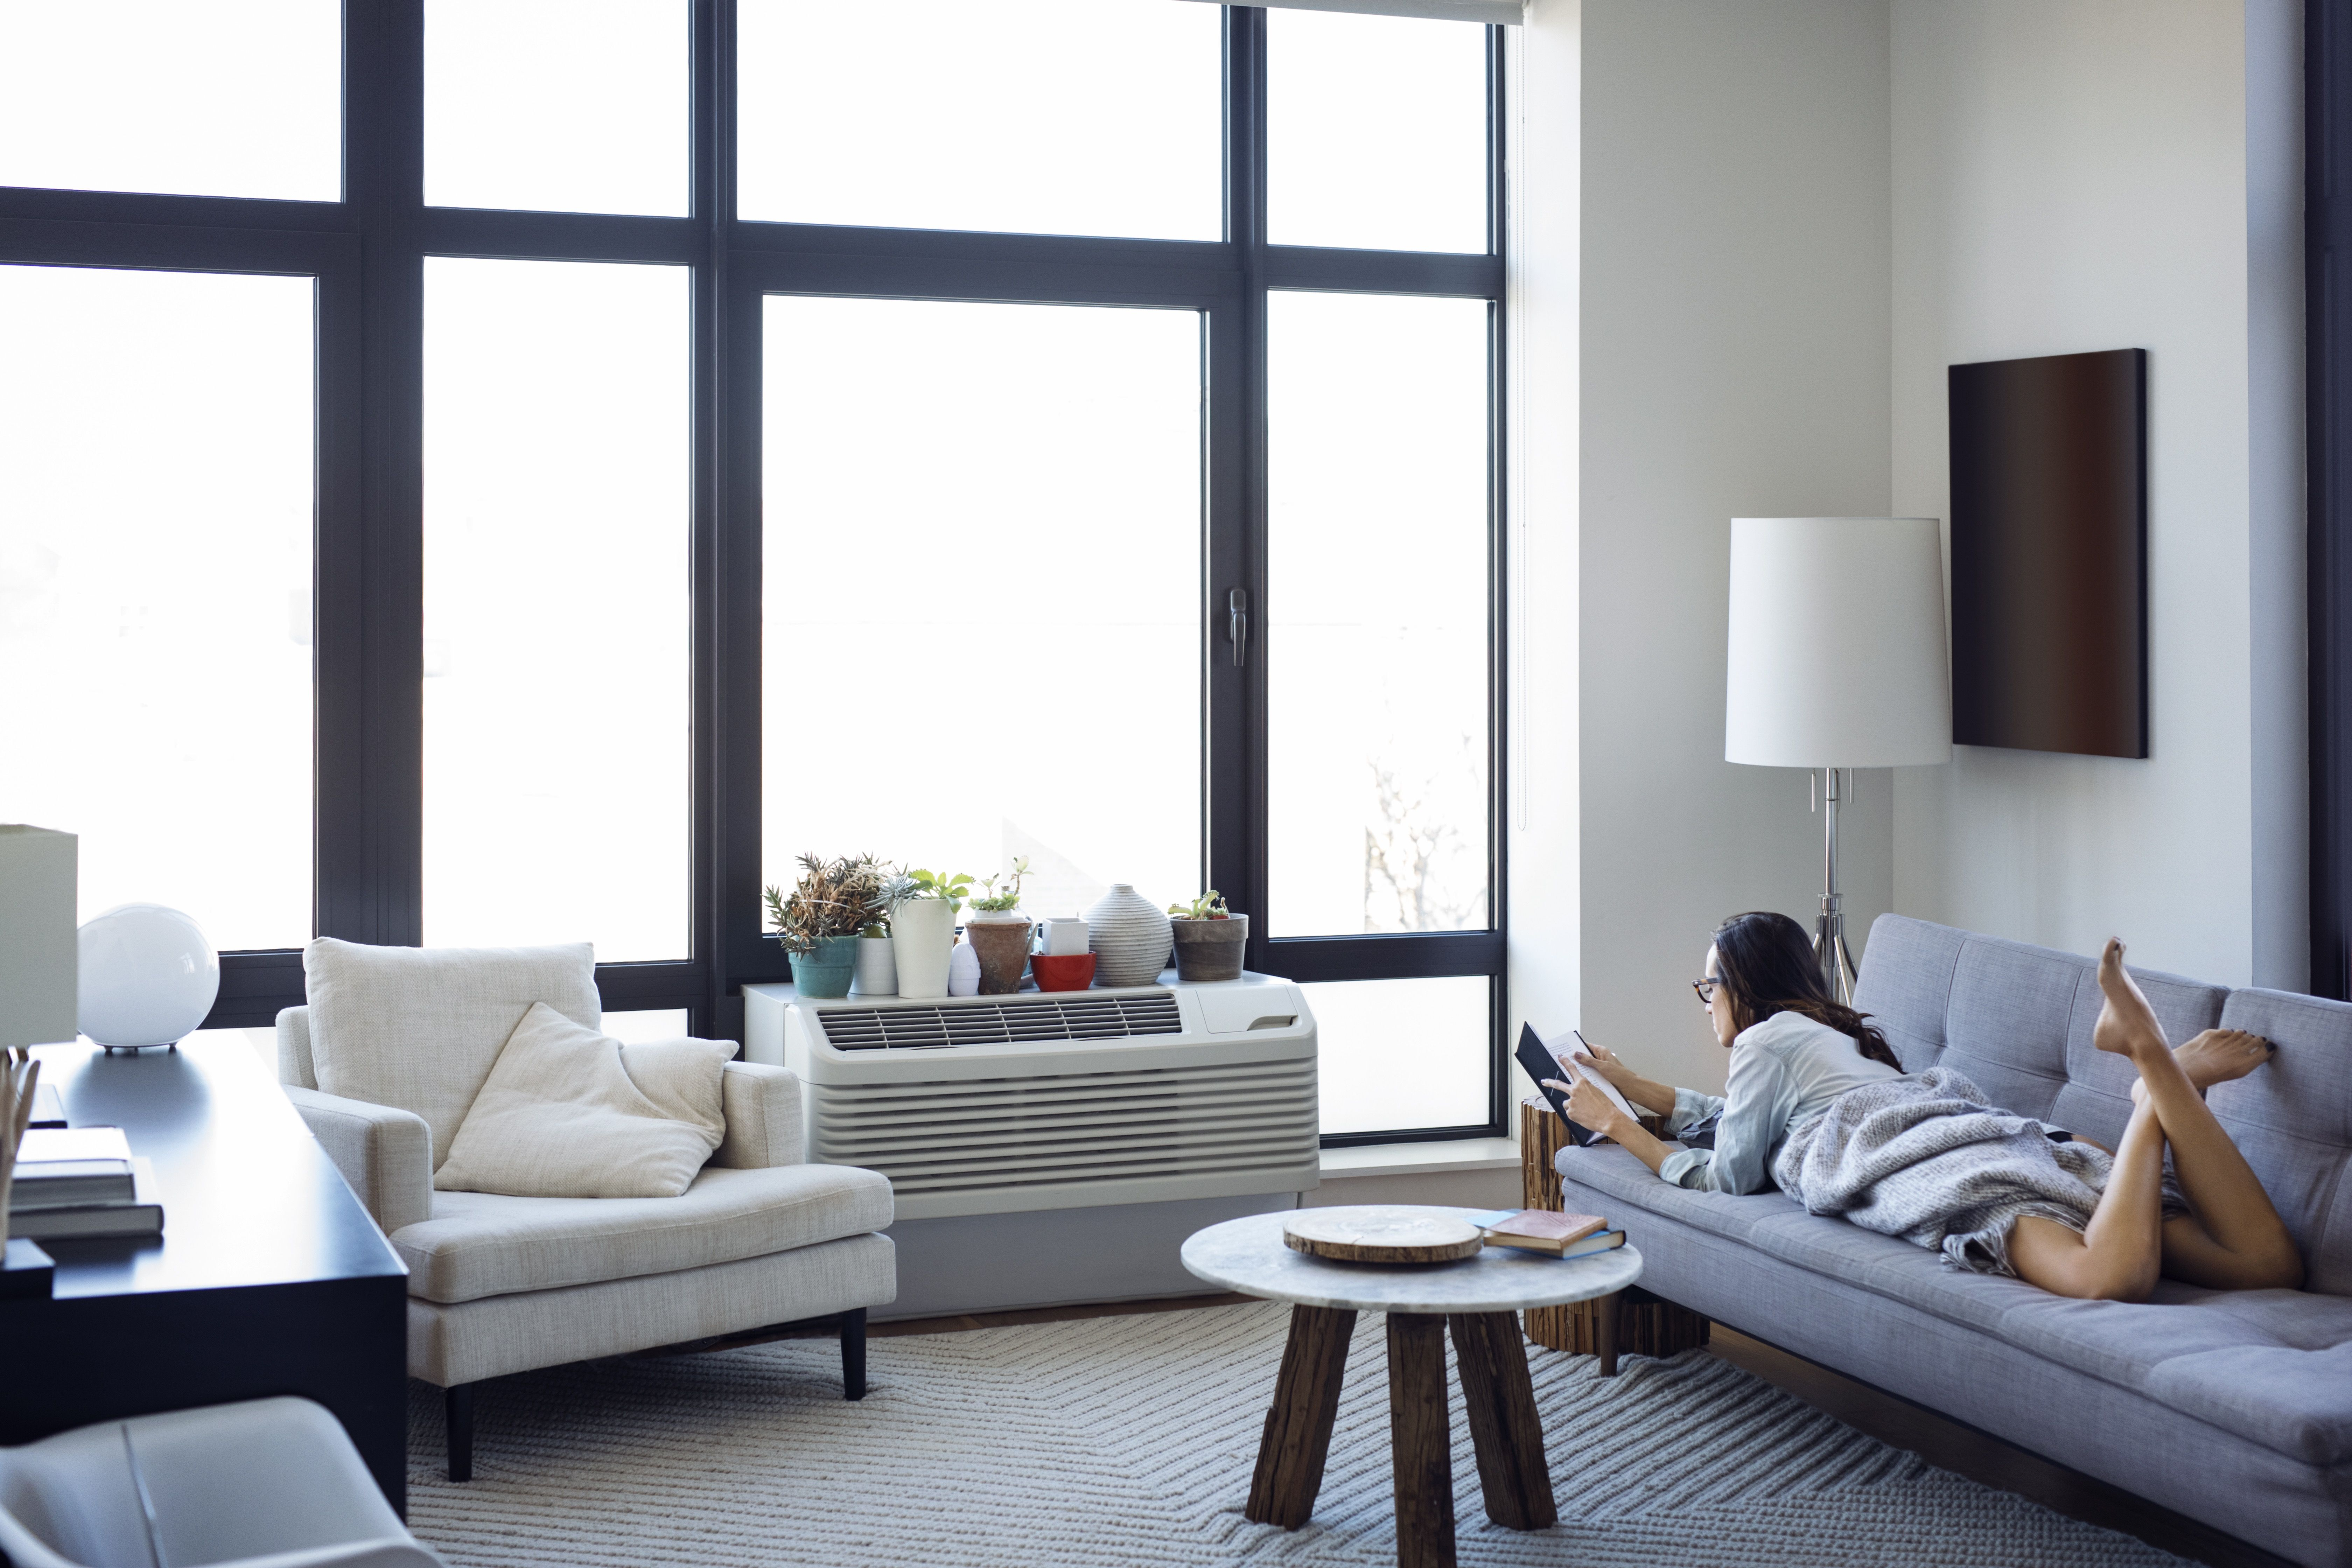 The Best SmallSpace Air Conditioners to Cool Your Home